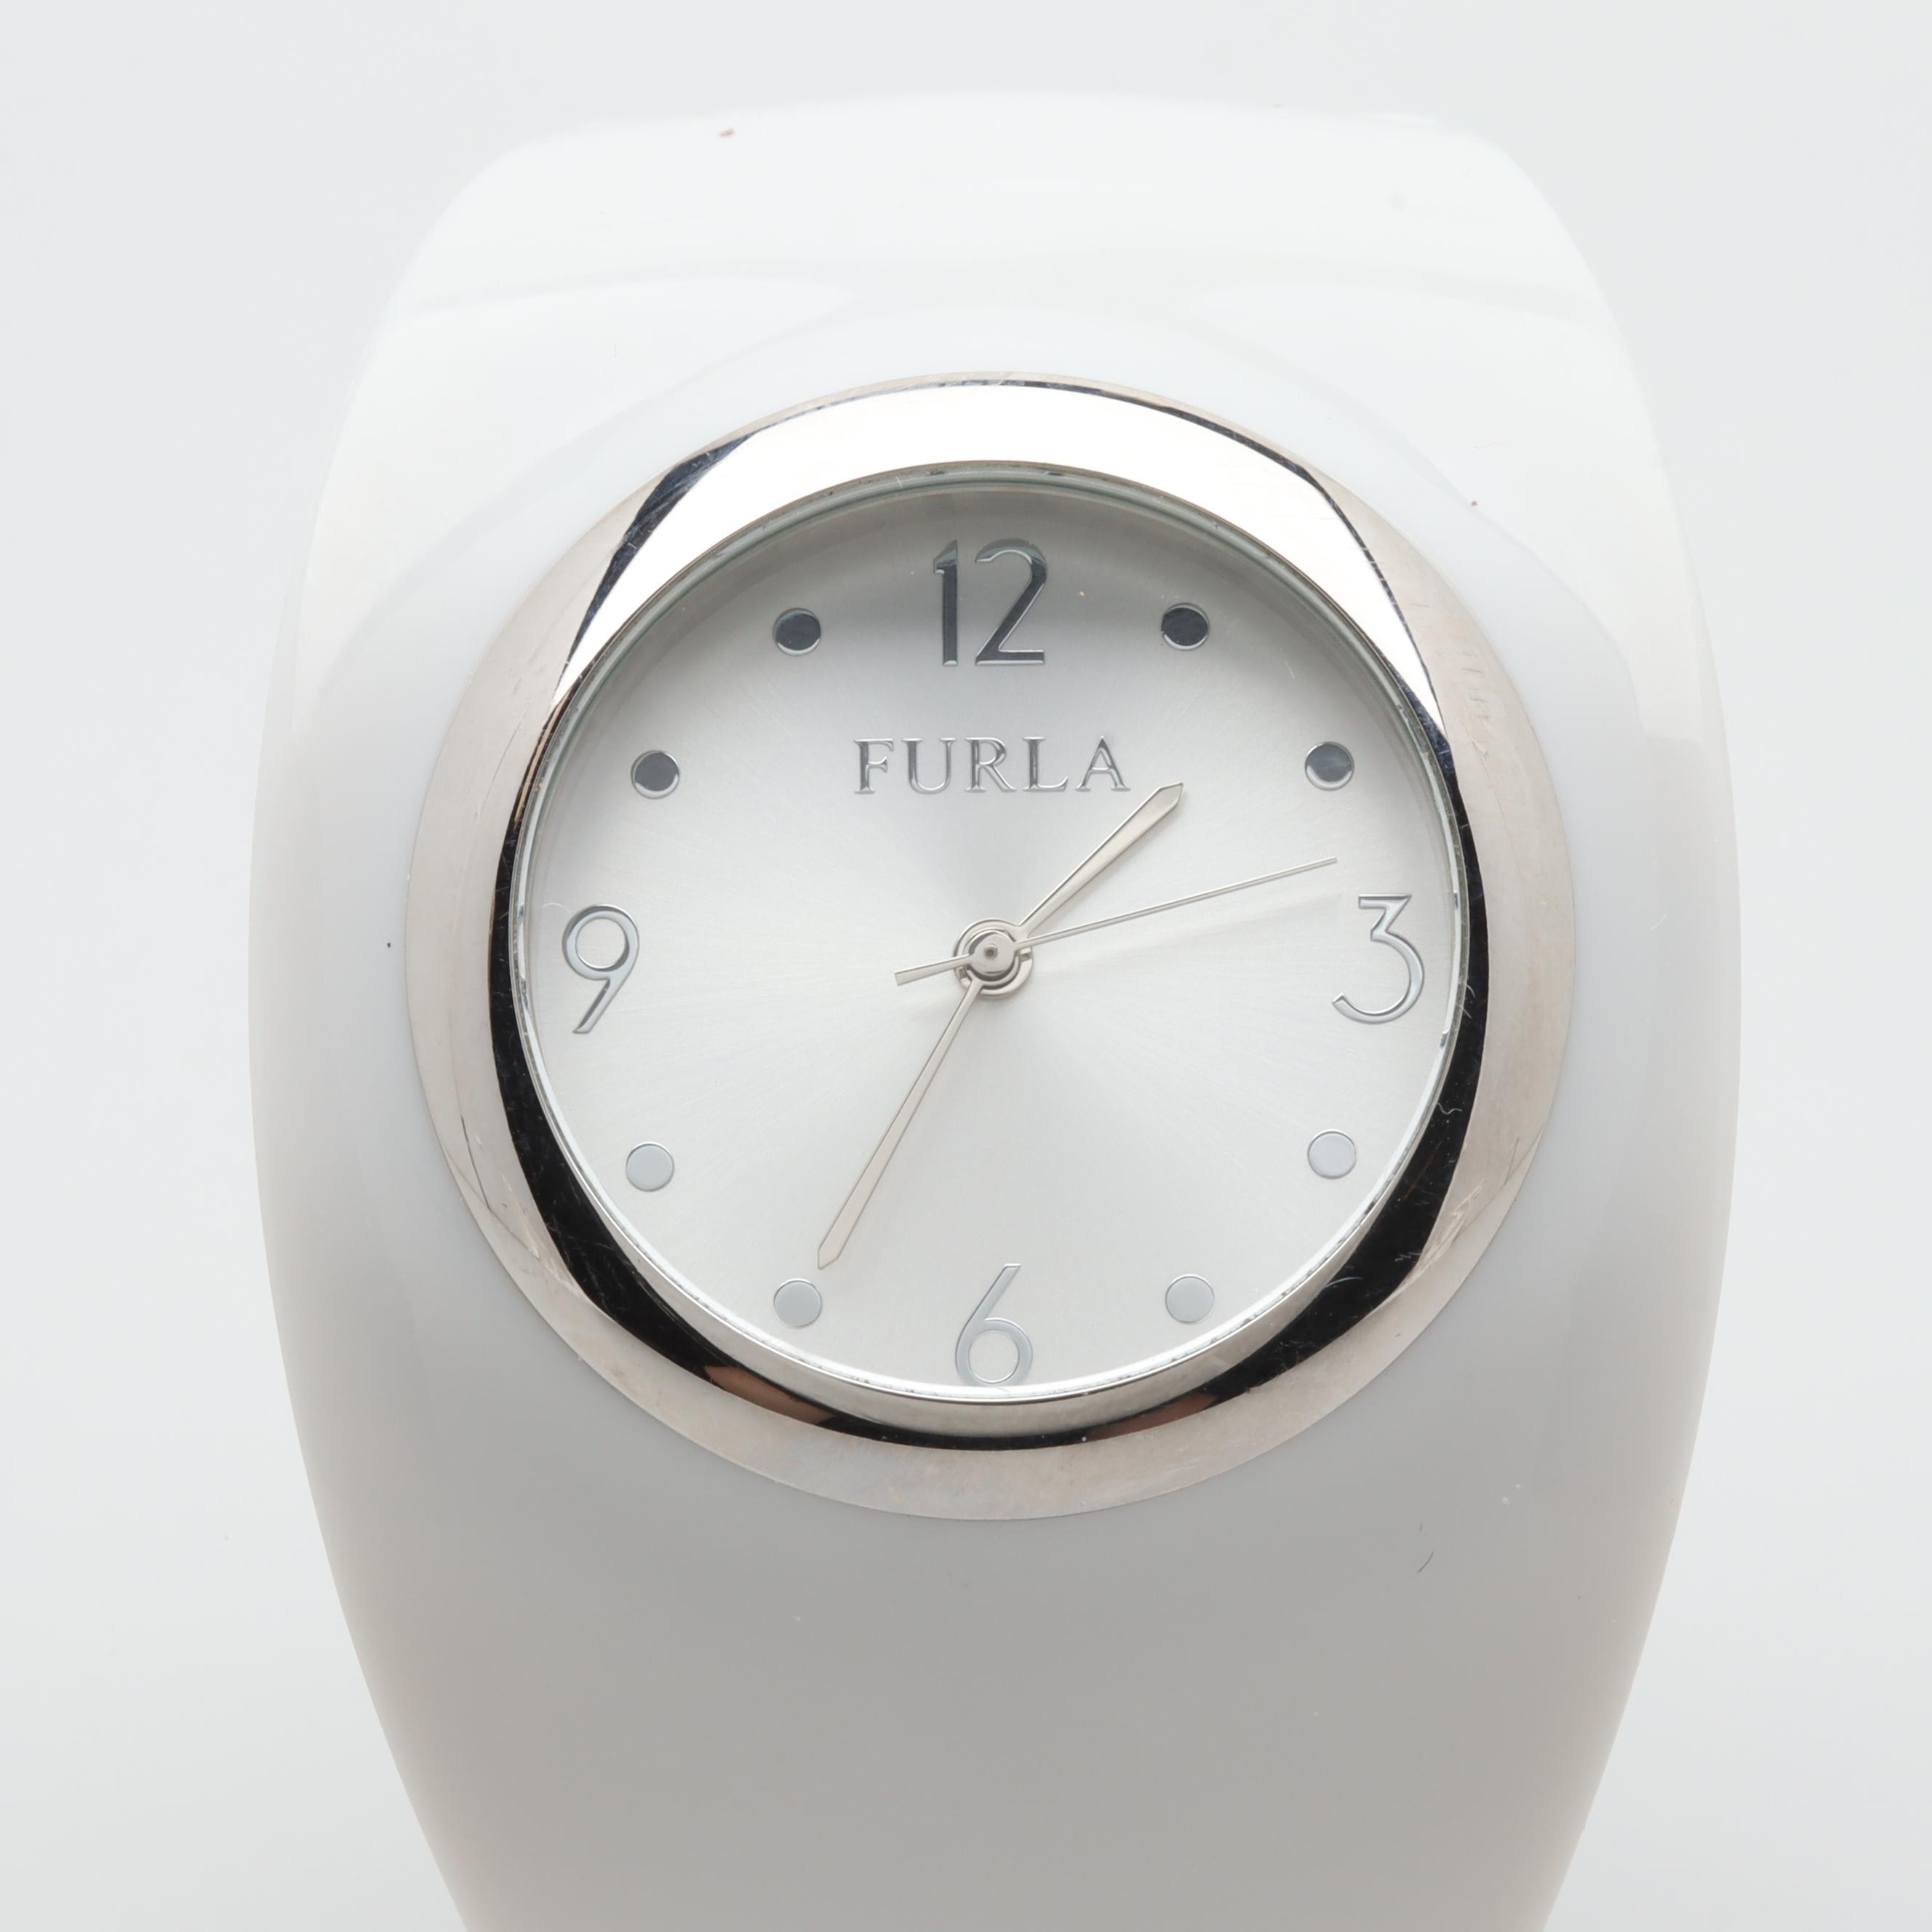 Furla Stainless Steel and Plastic Resin Bangle Wristwatch